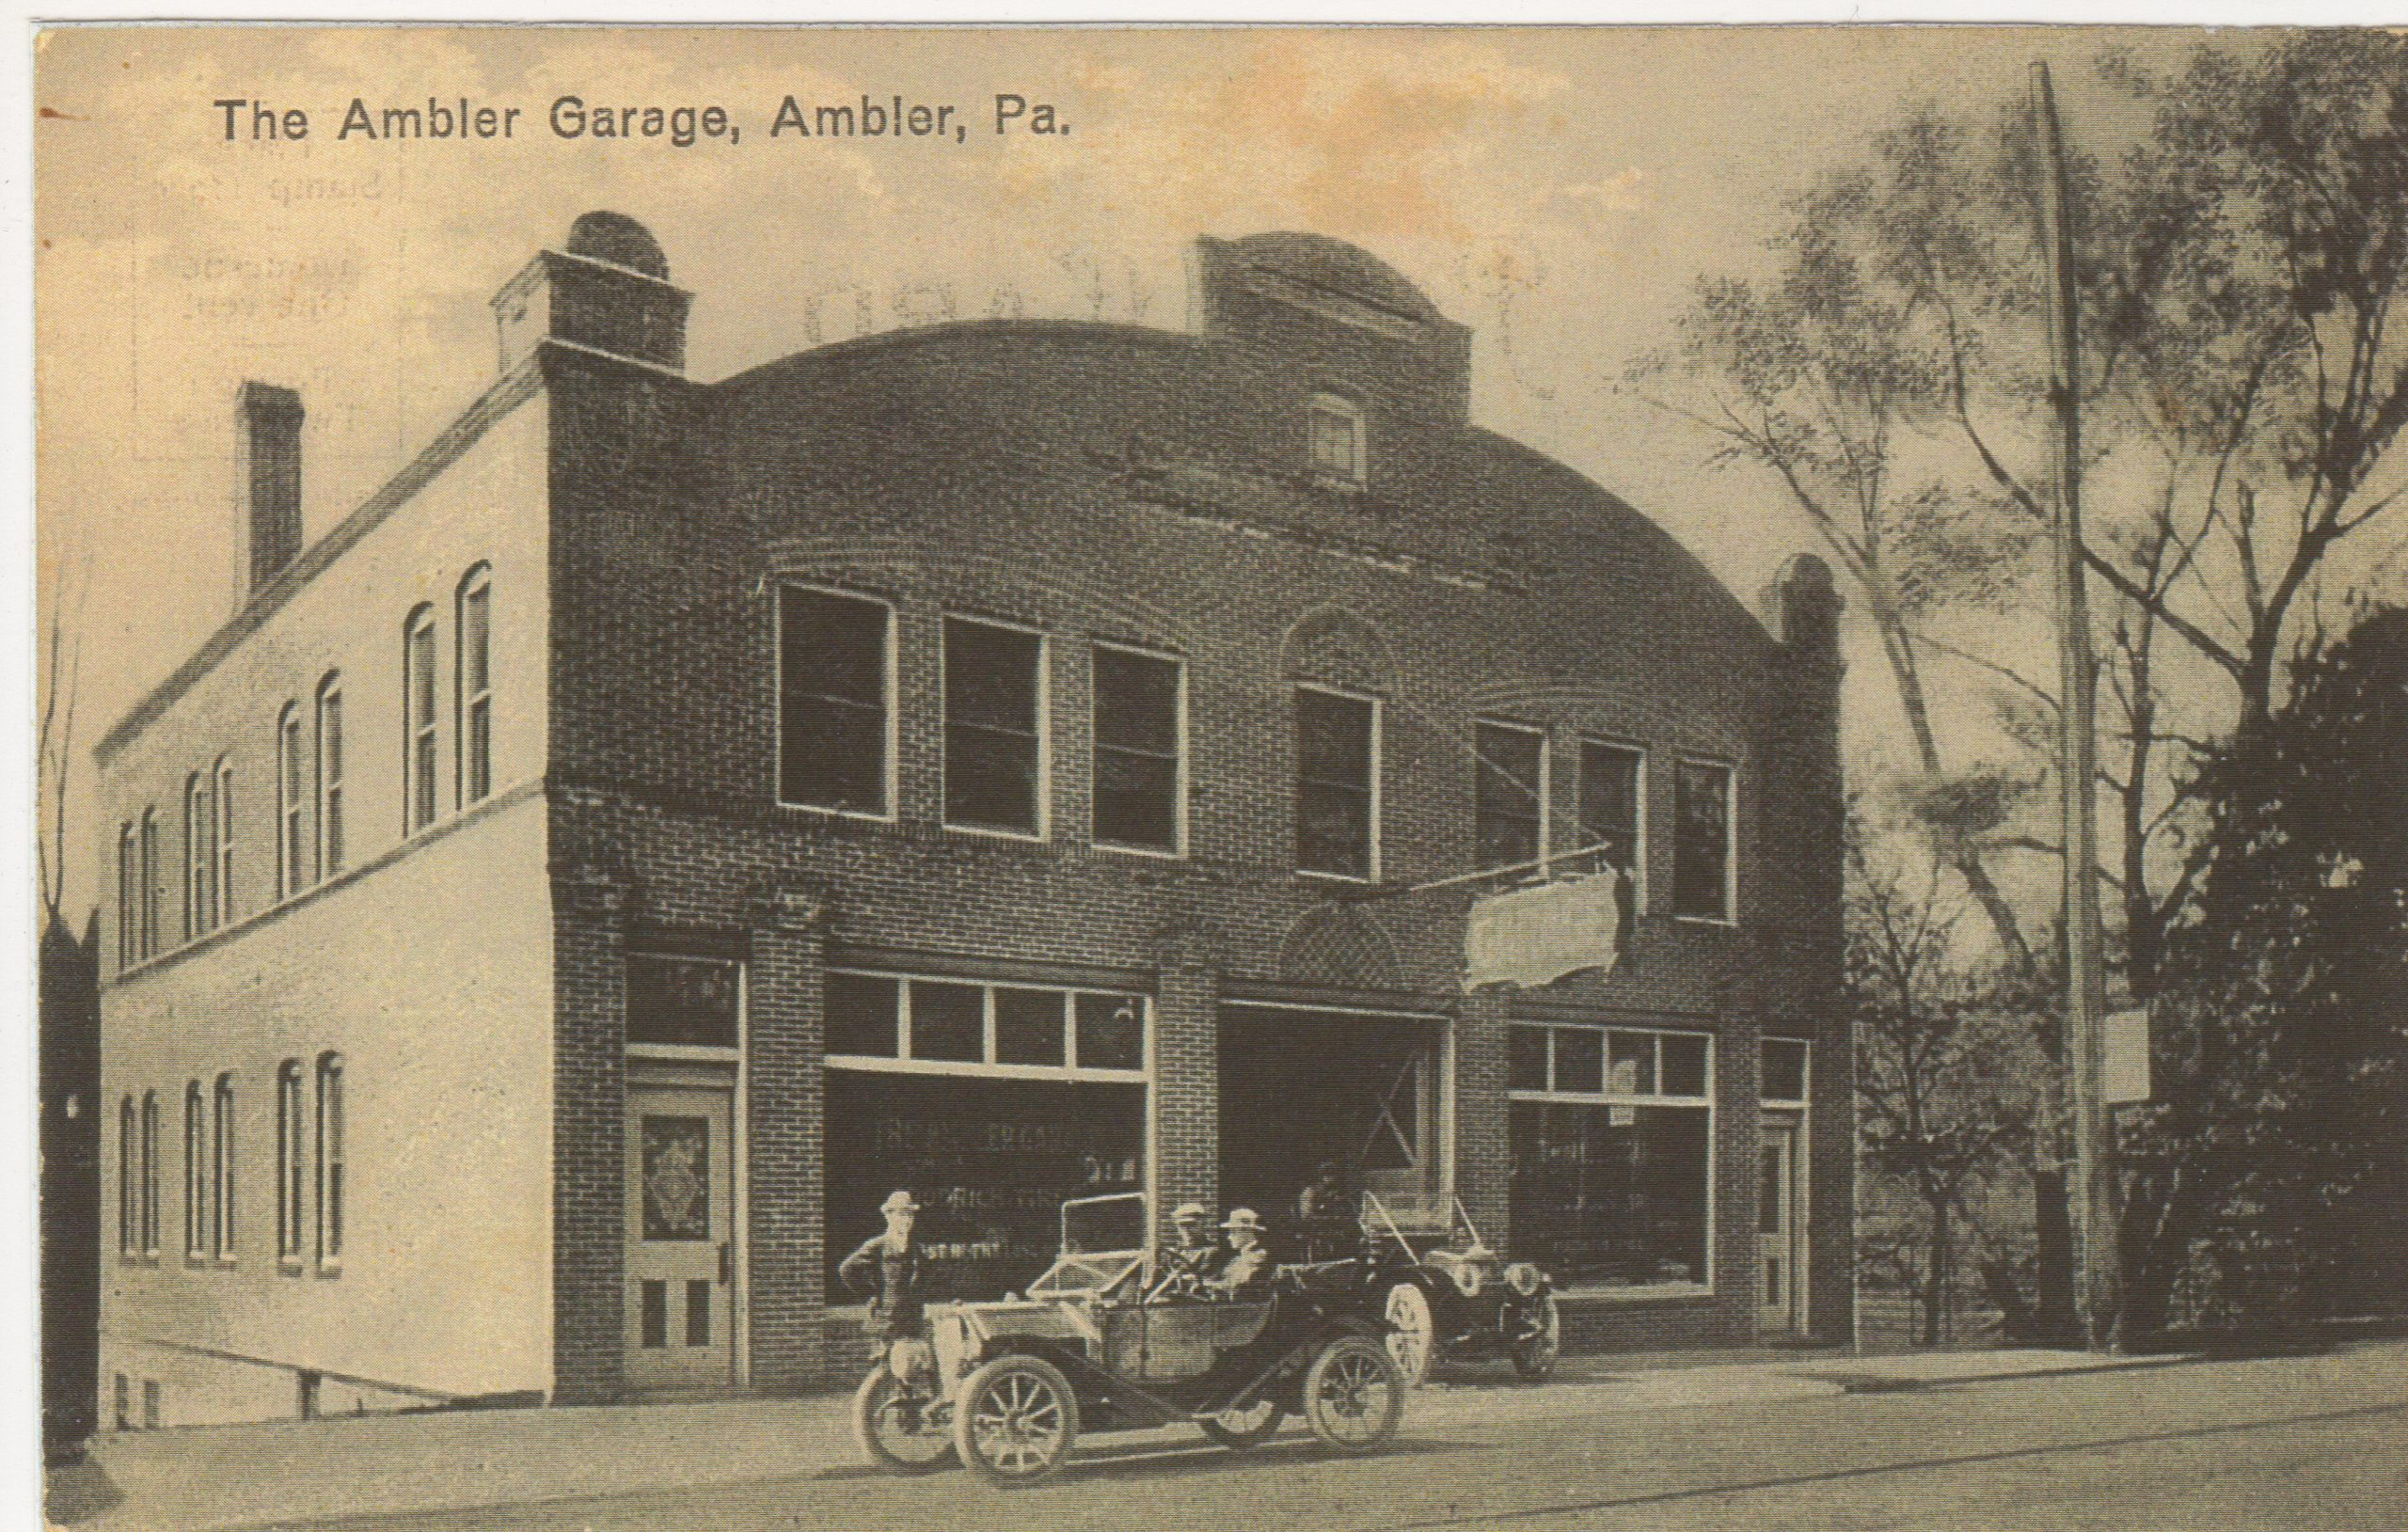 4125.79 Ambler Pa Postcard_The Ambler Garage